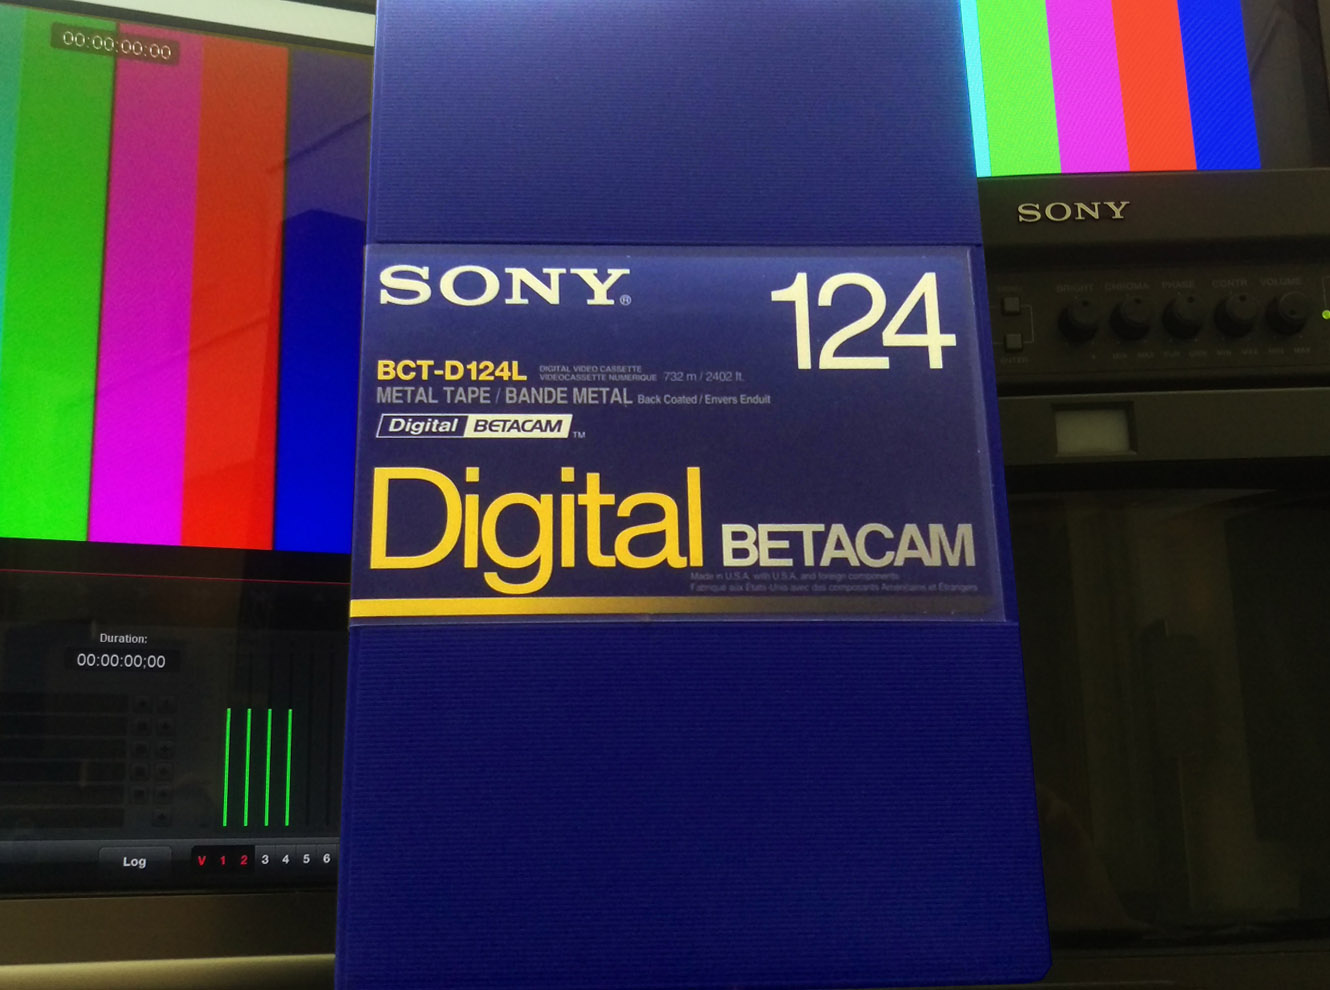 Broadcast-quality digitizing and capture from all Betacam formats